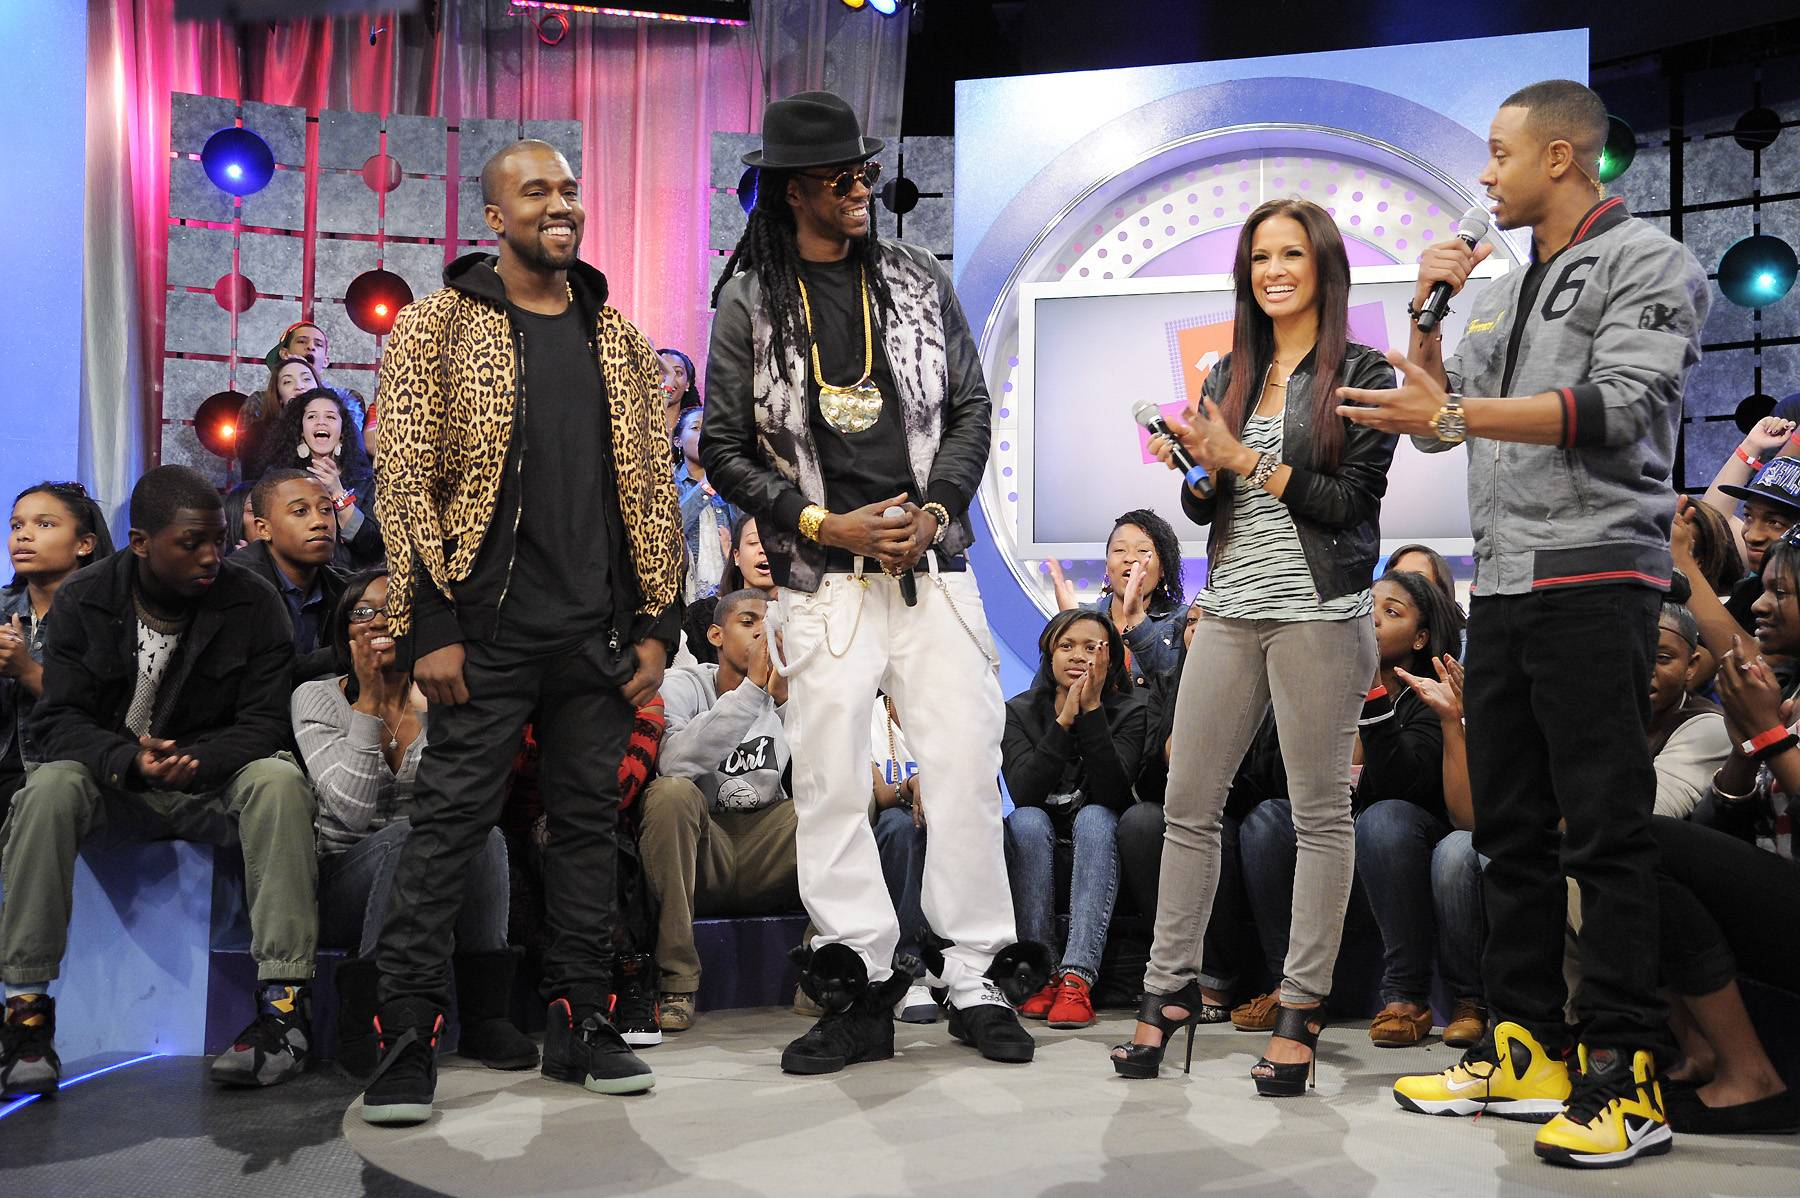 Love It - Kanye West, 2 Chainz, Rocsi Diaz and Terrence J at 106 & Park, April 9, 2012. (photo: John Ricard / BET)